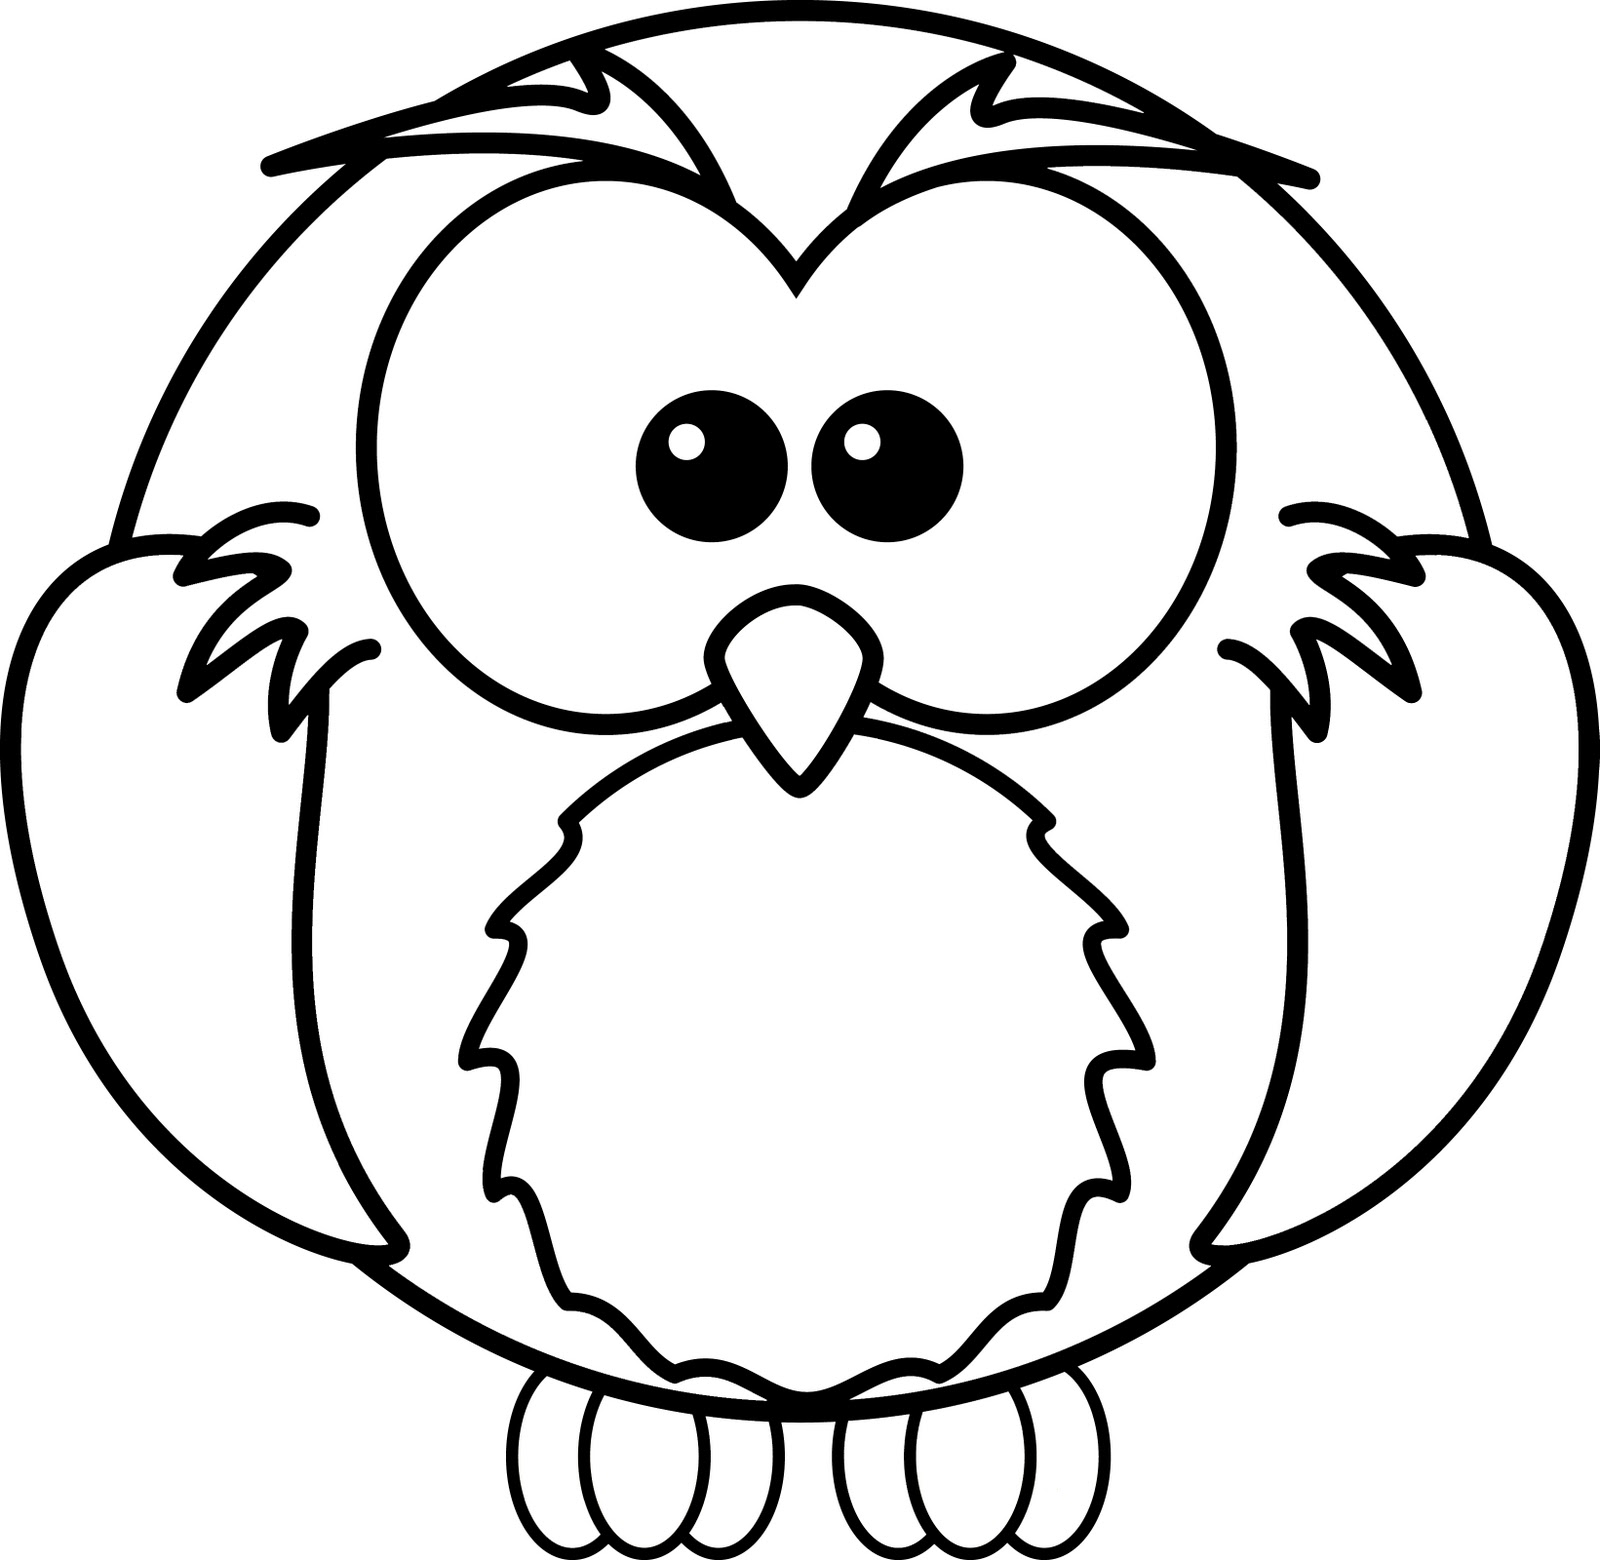 It's just a picture of Amazing Coloring Pictures Of Owls